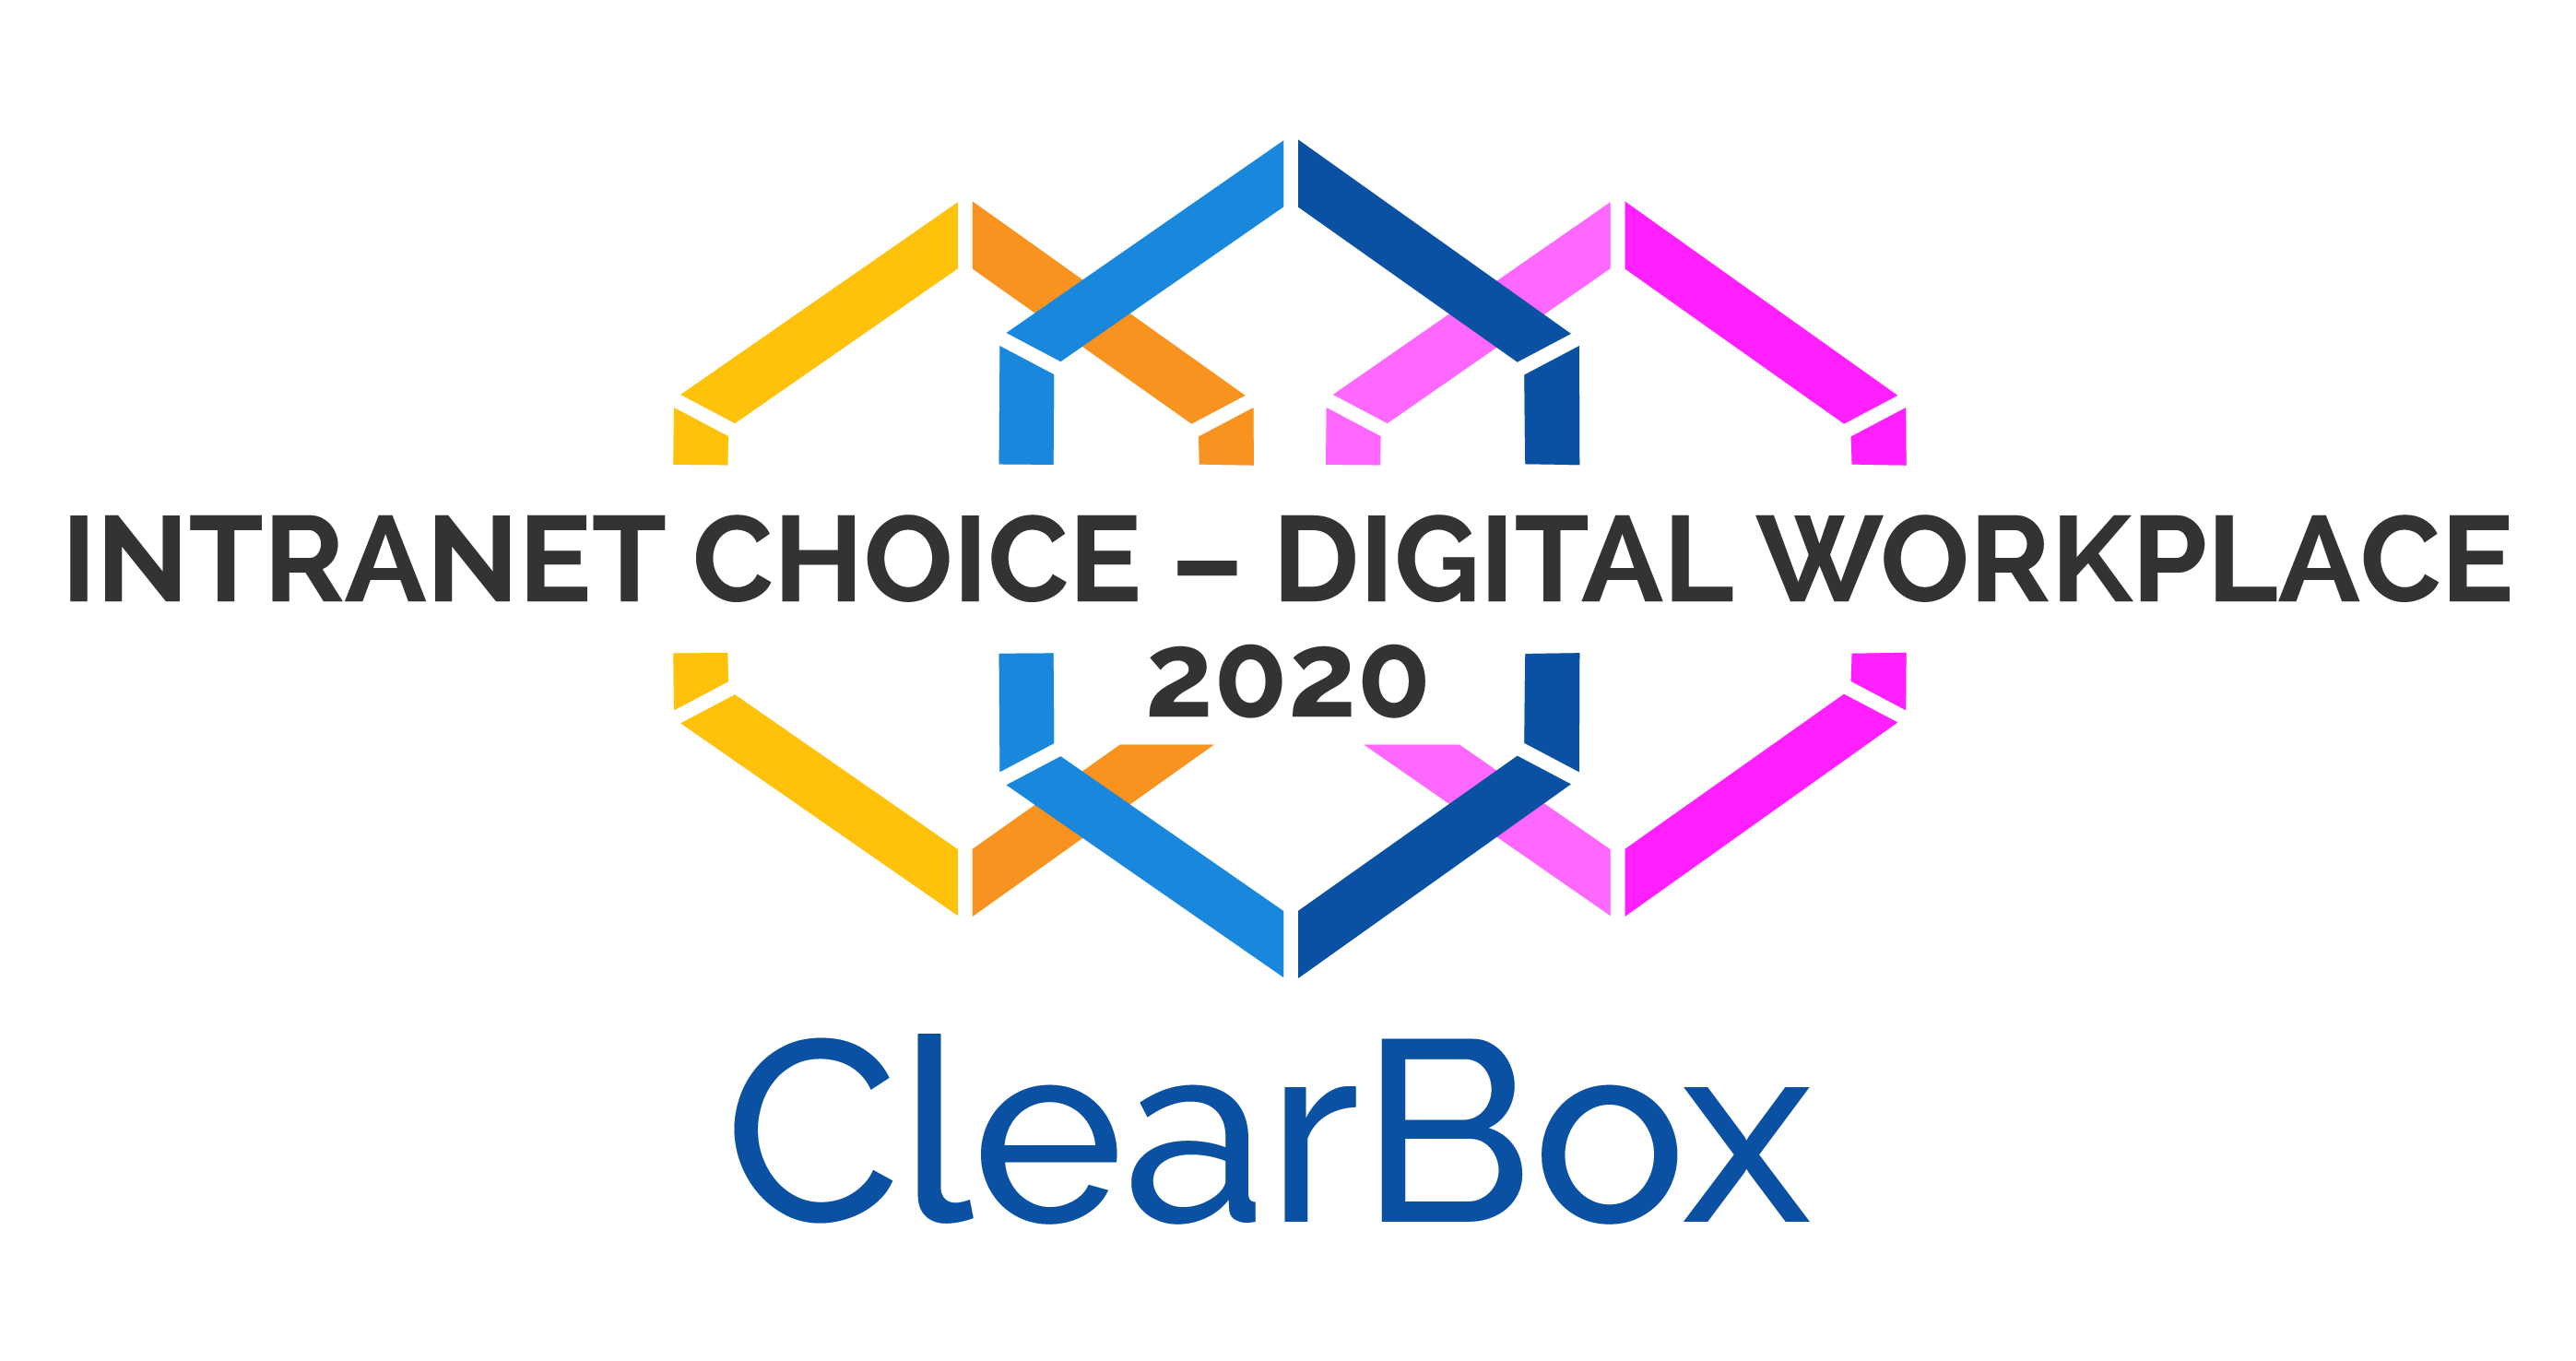 ClearBox Intranet Choice 2020 - Digital Workplace.